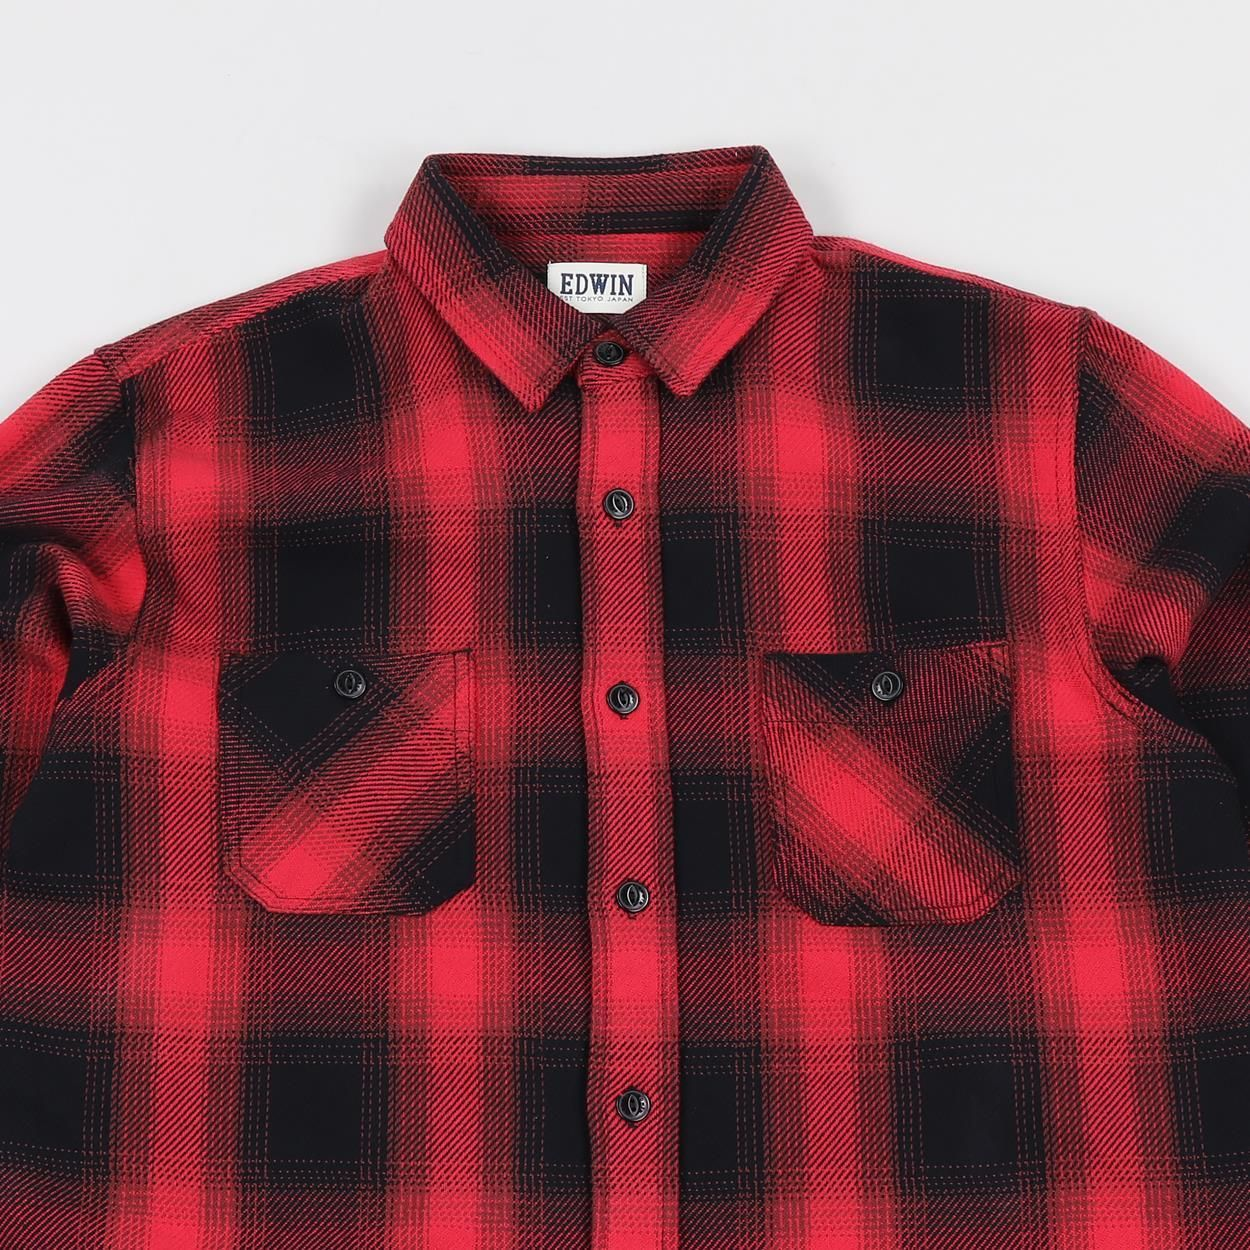 5fe864f0515f Edwin Heavyweight Long Sleeved Labour Shirt. When it comes to a shirt in  the cold